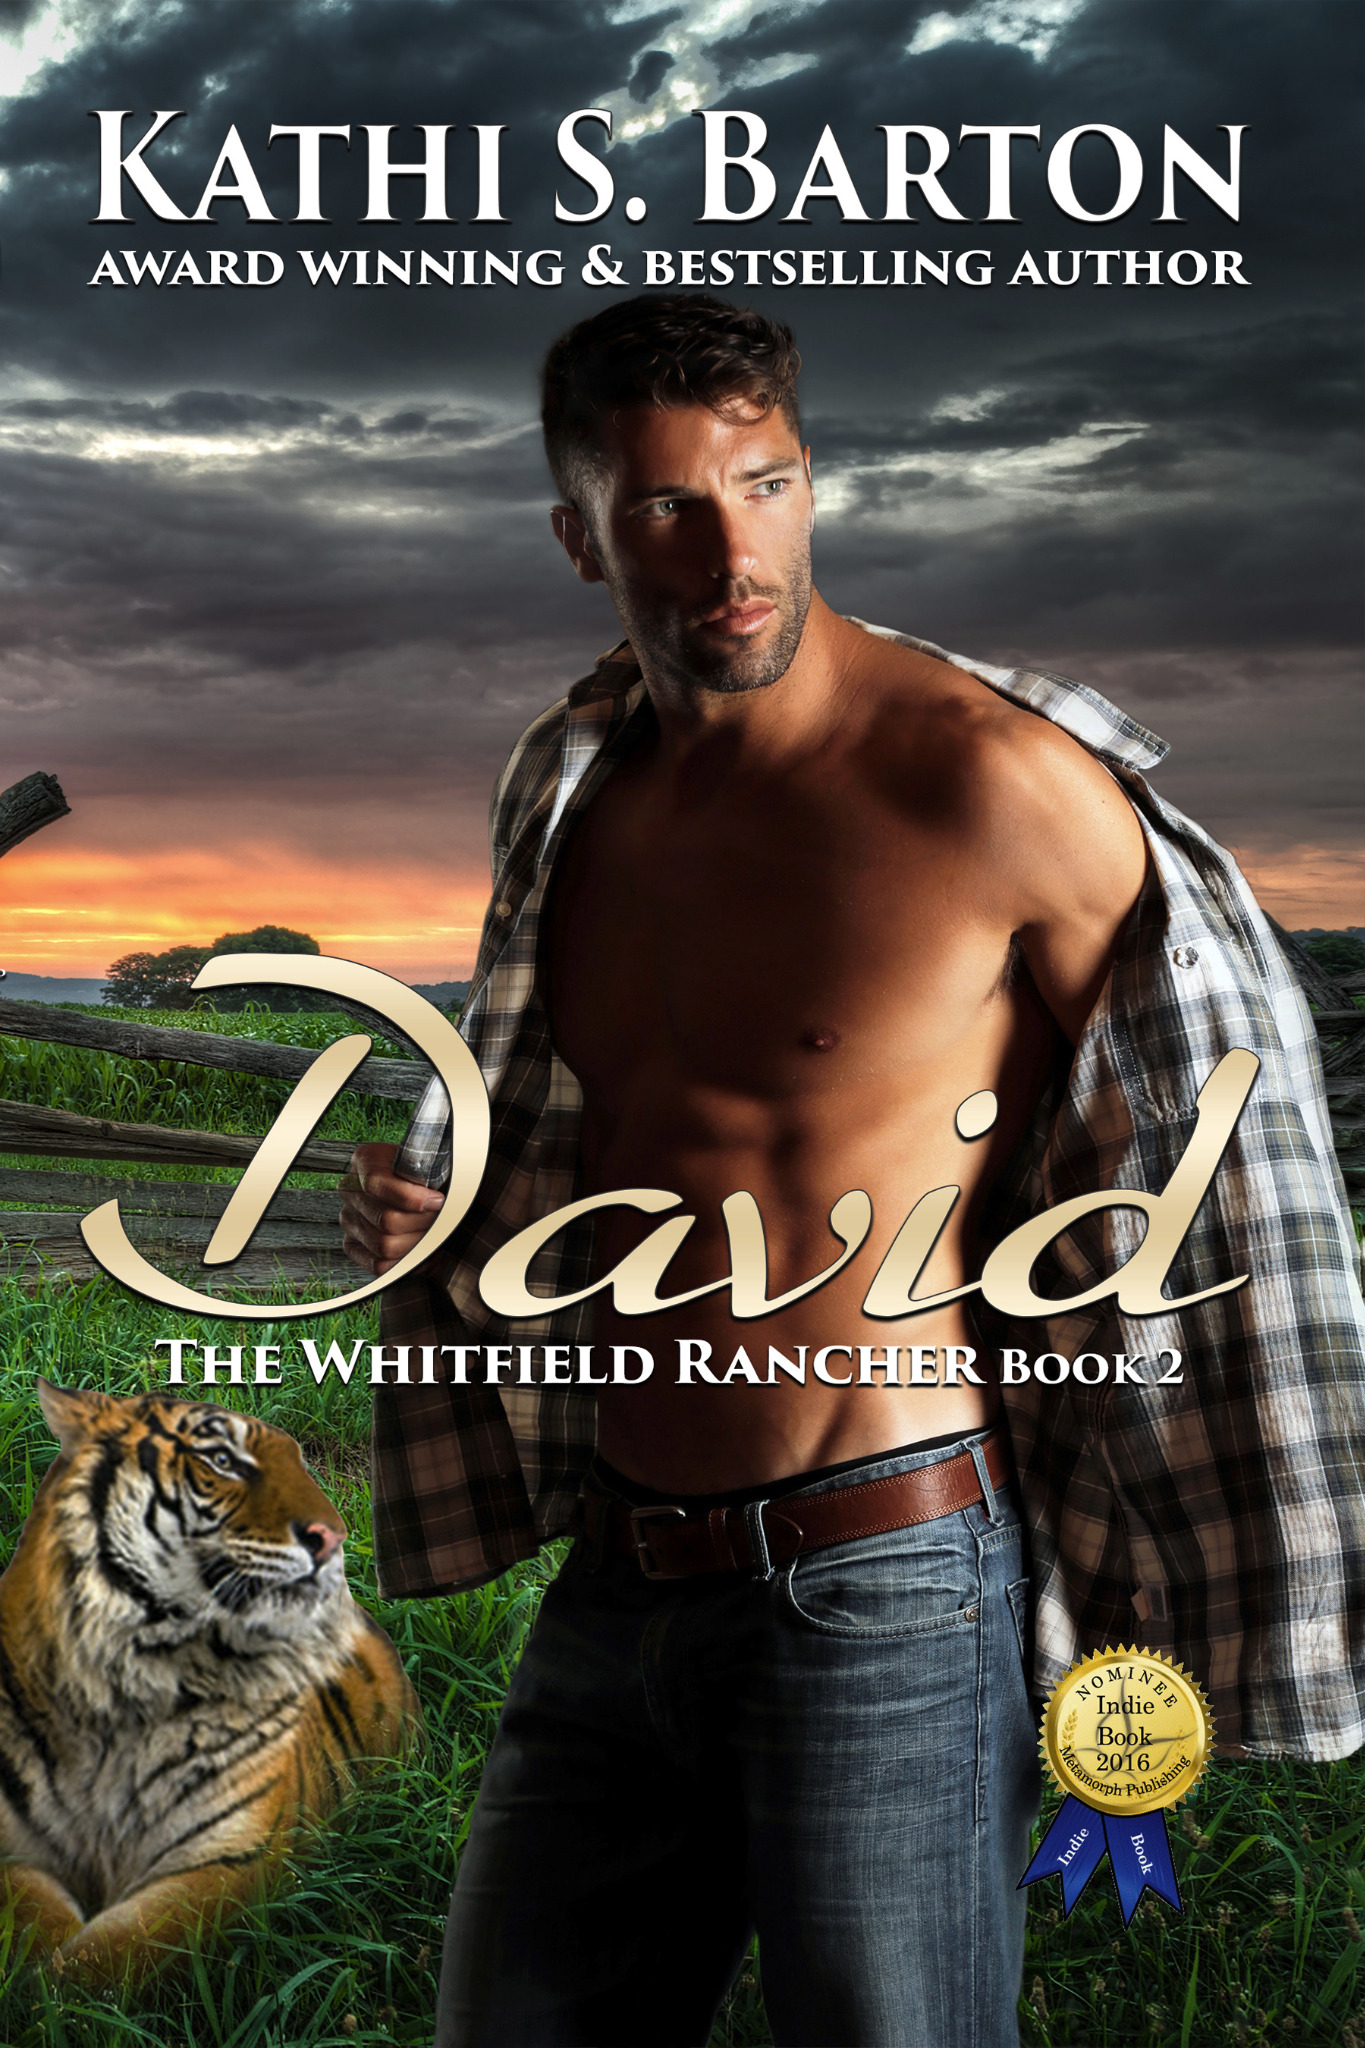 David - The Whitfield Rancher Book 2